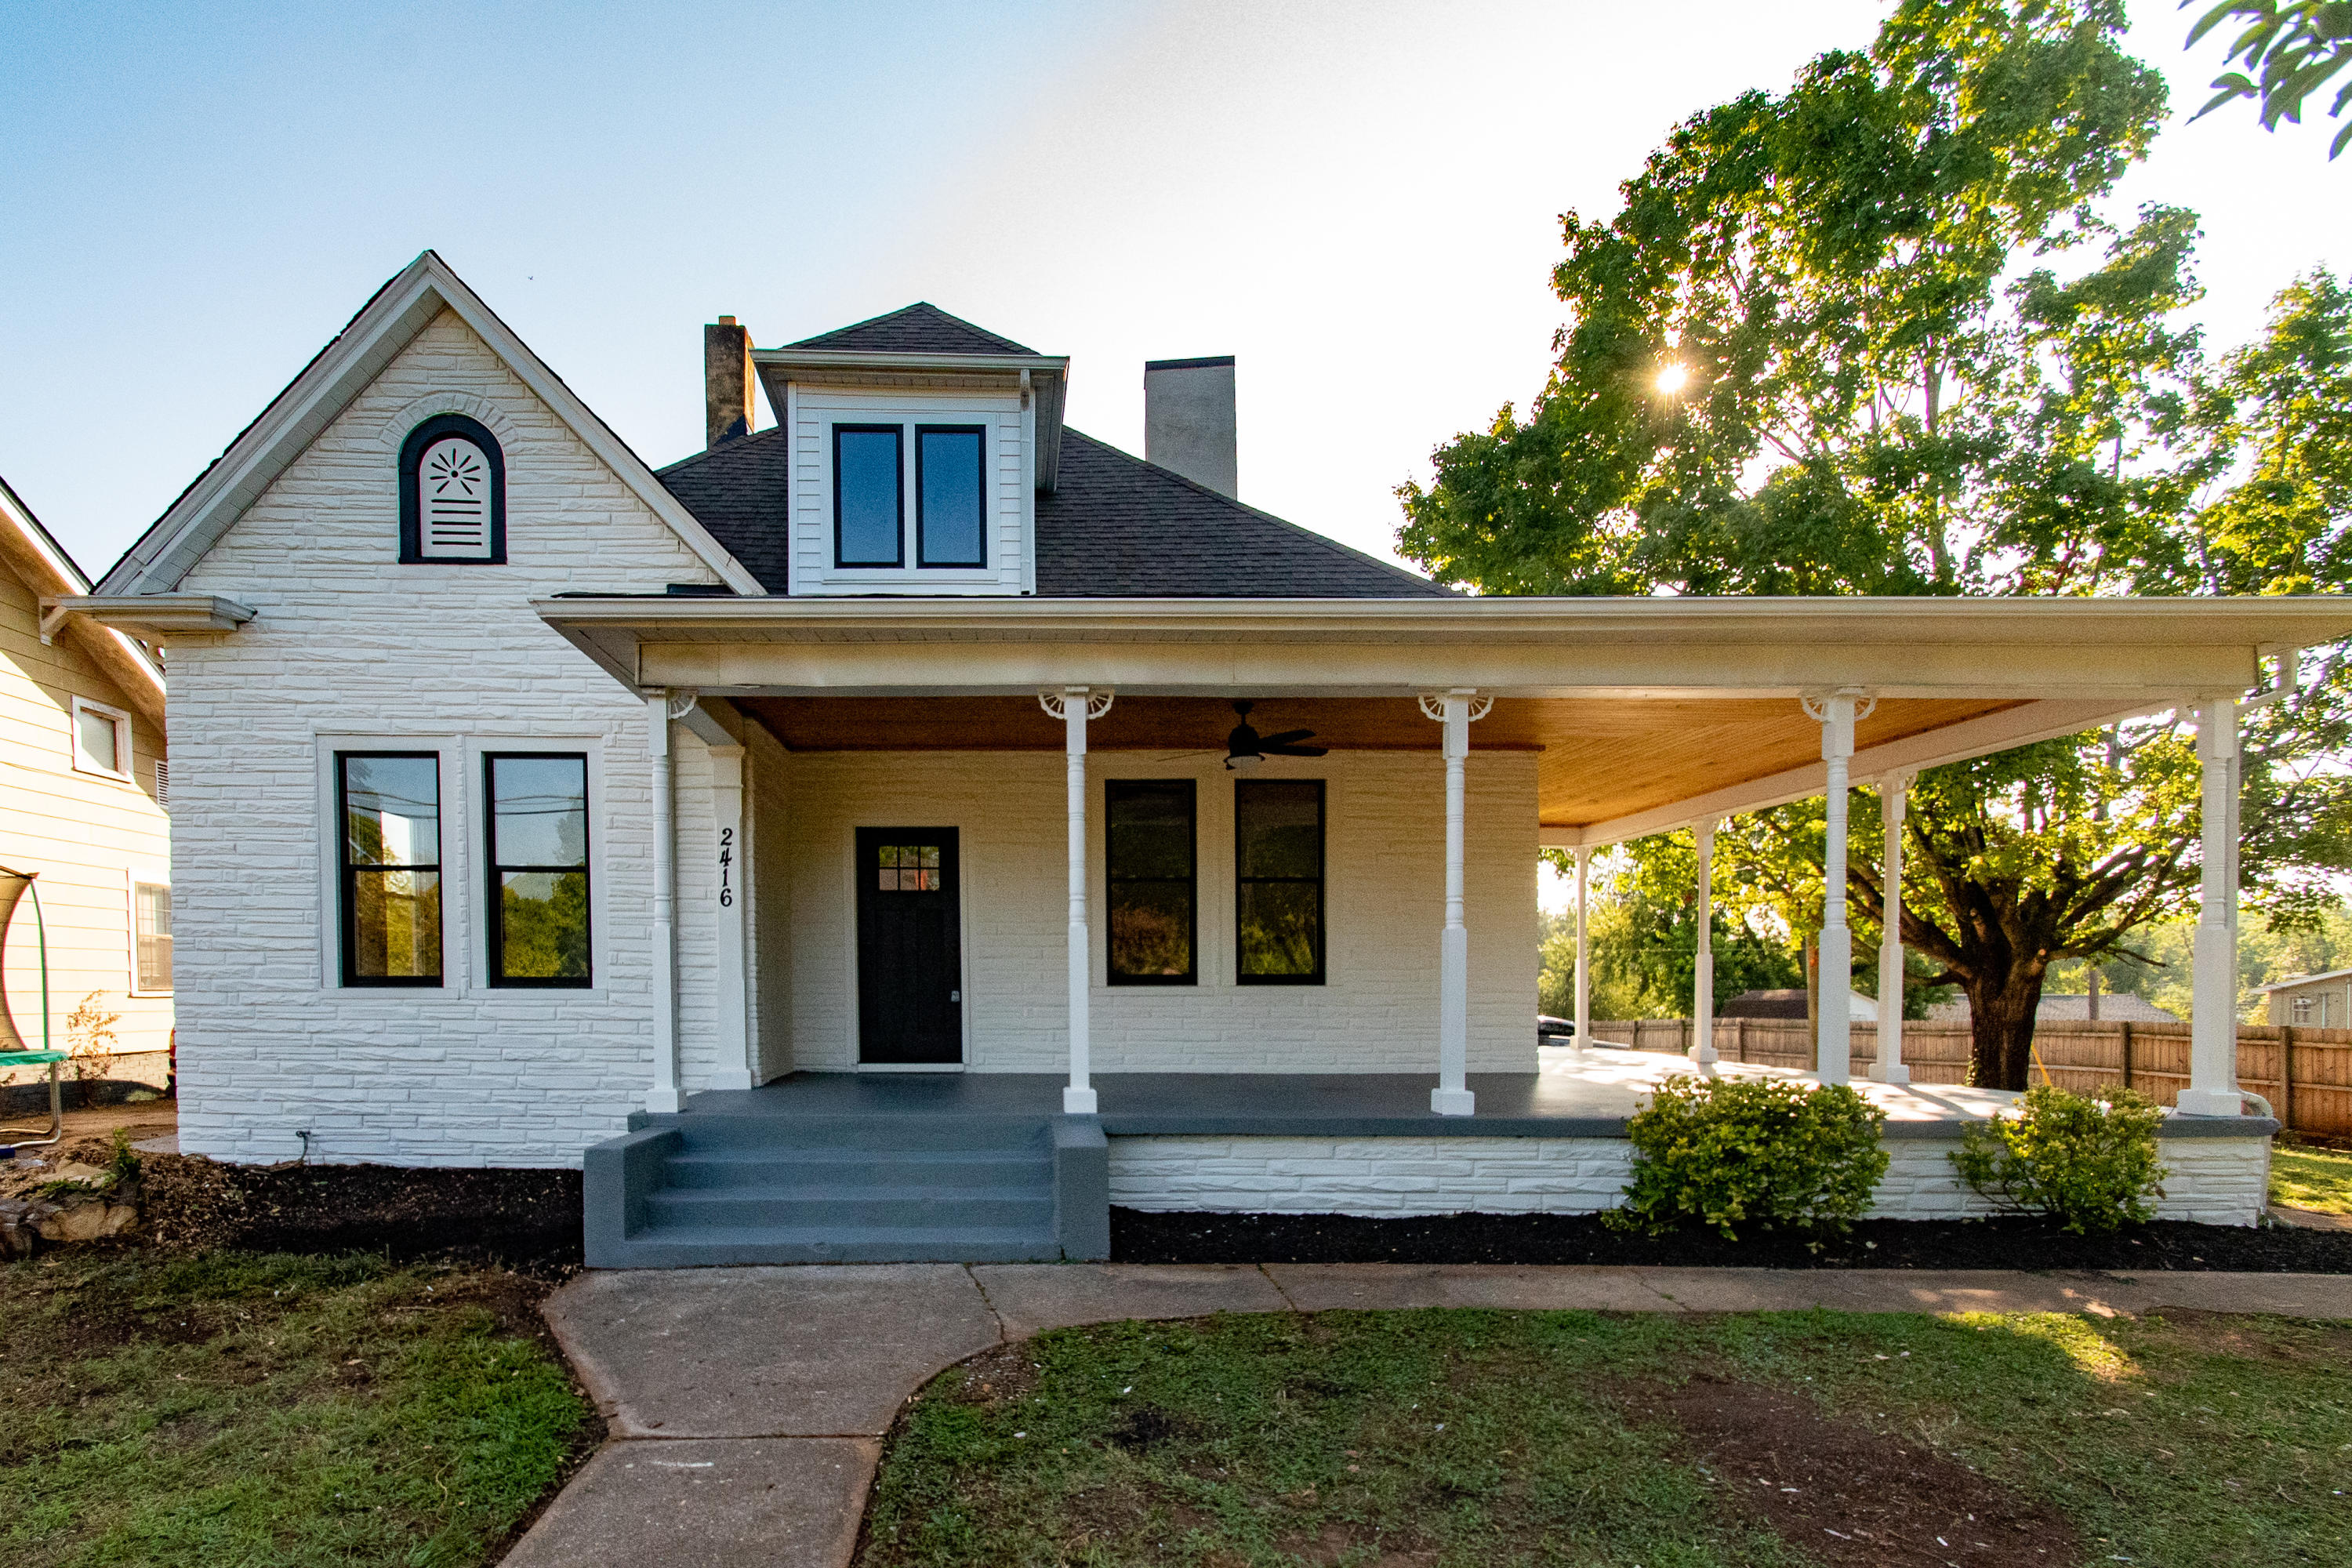 2416 Nadine St, Knoxville, Tennessee 37917, 3 Bedrooms Bedrooms, ,2 BathroomsBathrooms,Single Family,For Sale,Nadine,1091243